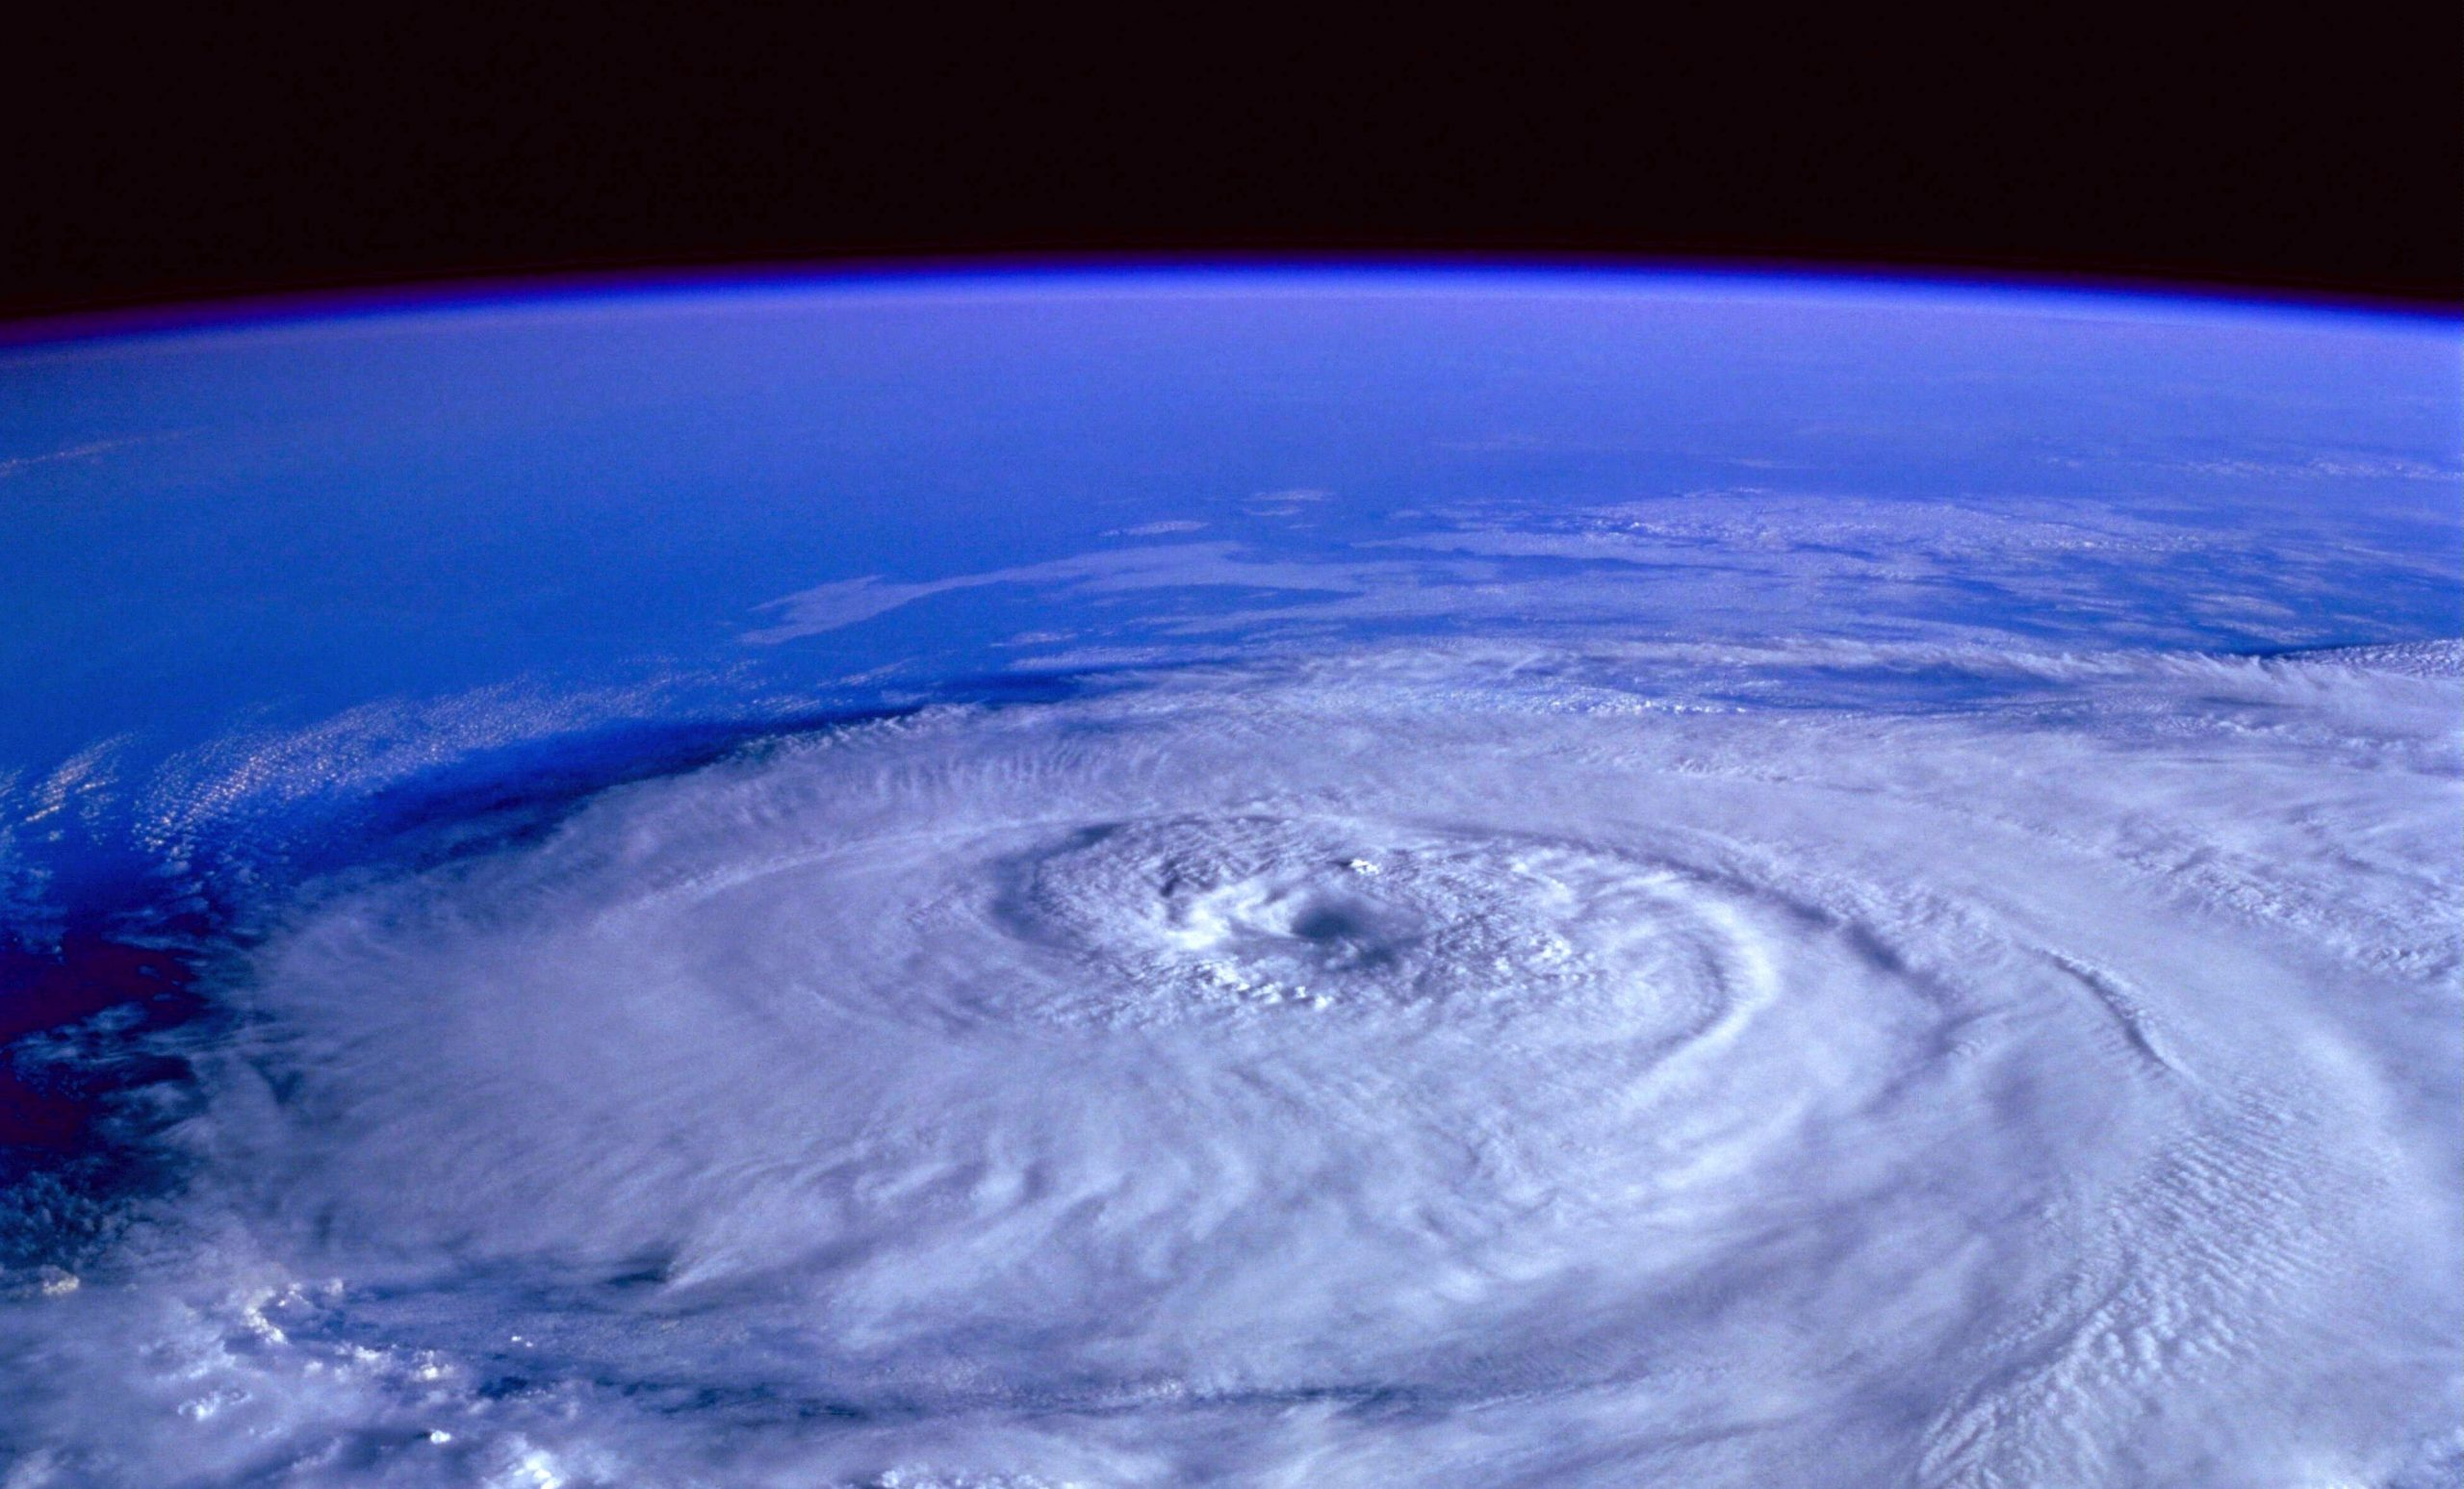 eye of the storm image from outer space 71116 1 scaled - eye-of-the-storm-image-from-outer-space-71116